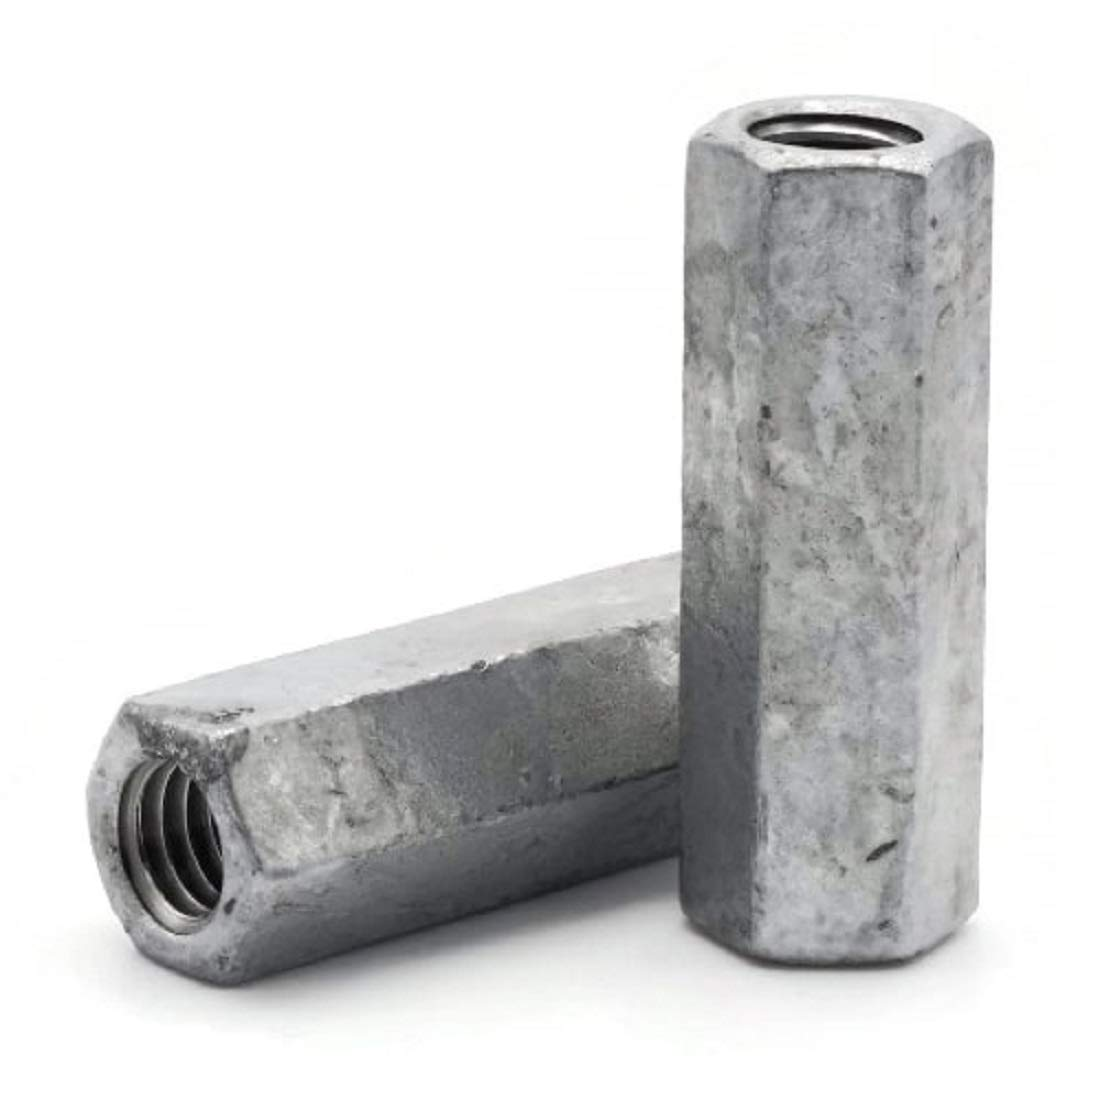 Coupling Nut Hot Dipped Galvanized - 1-1/2